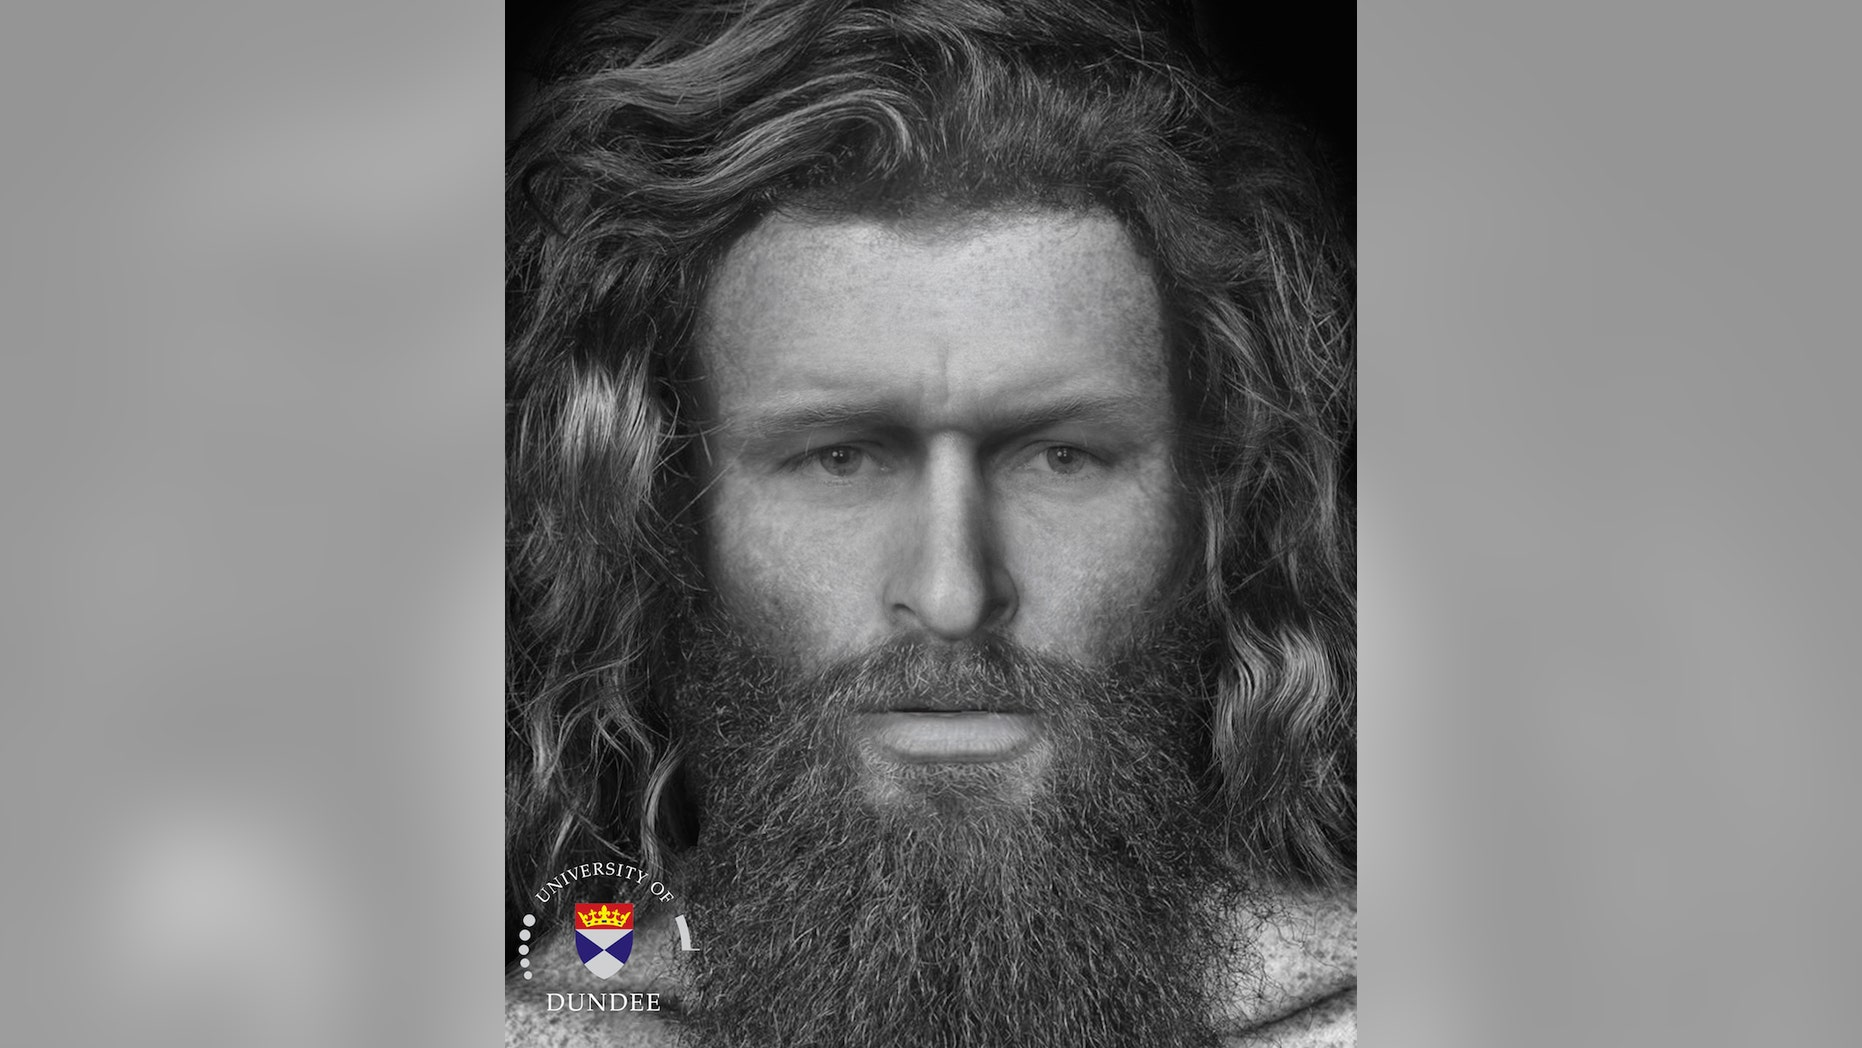 The digitally recreated face of the Pictish man.